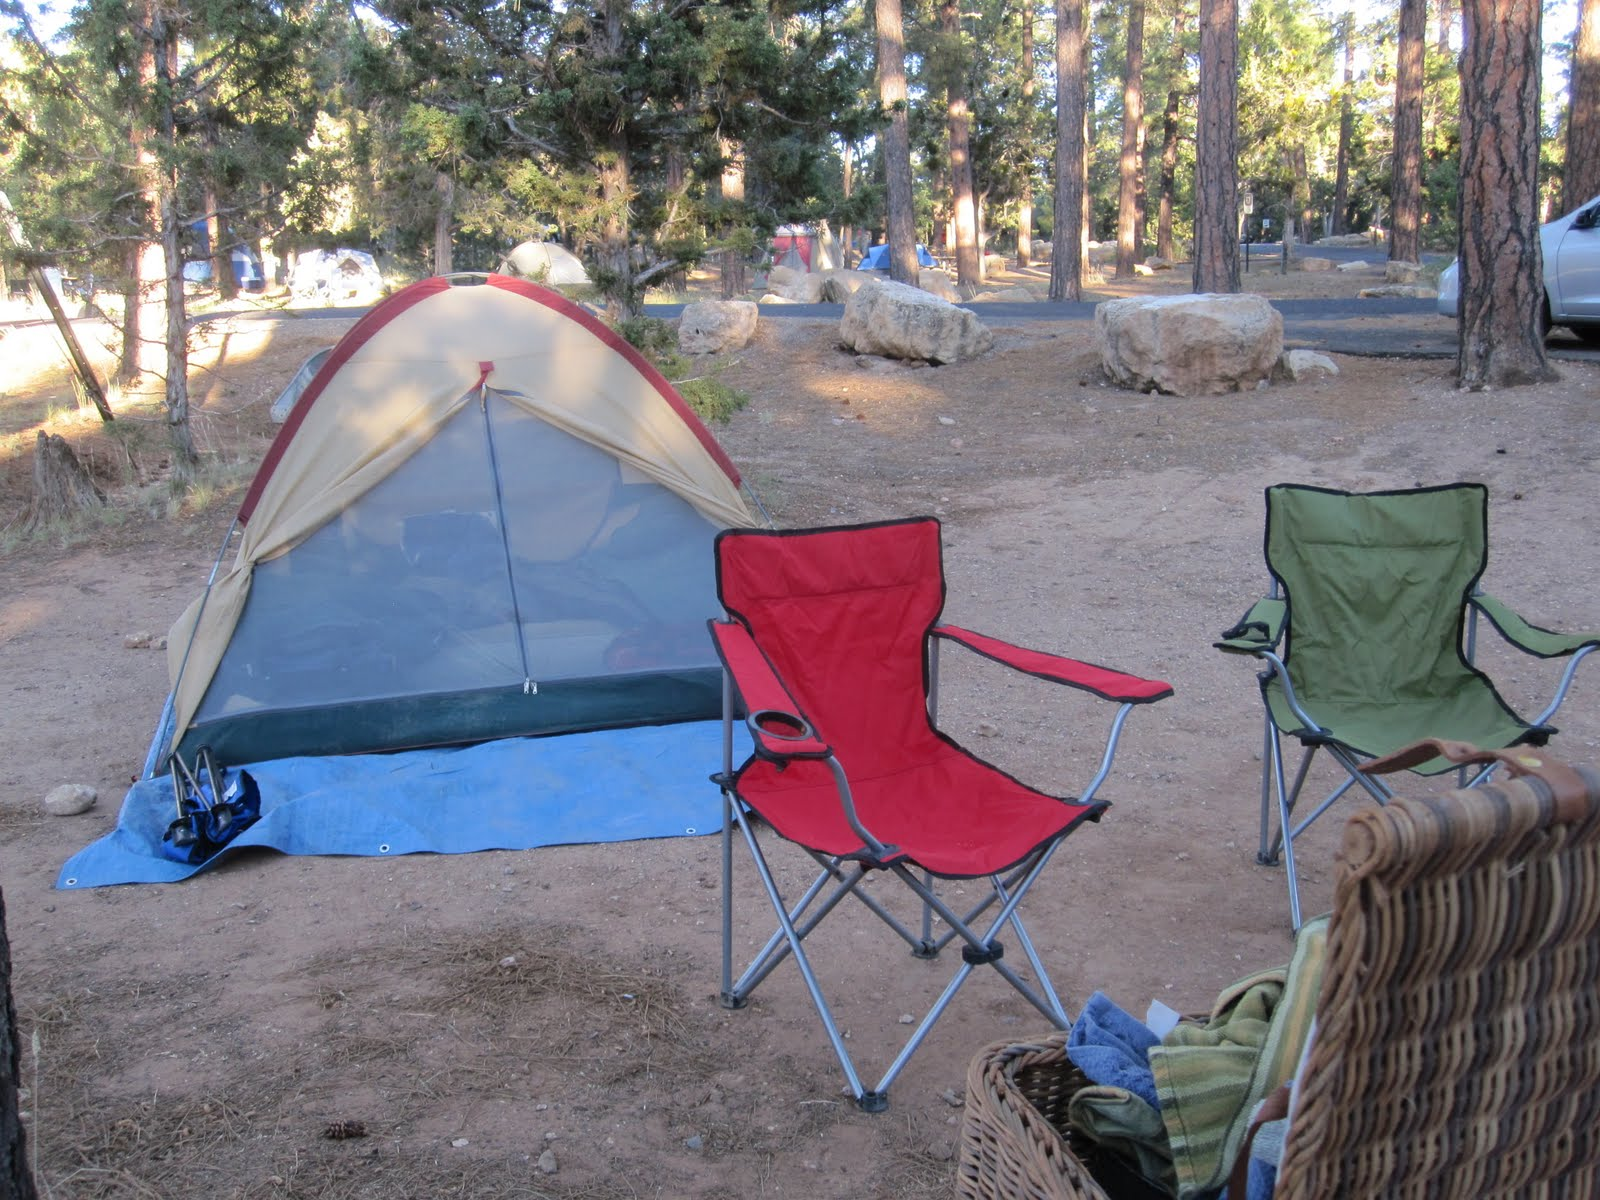 Our campsite at Mather Campground. Dinner night #1